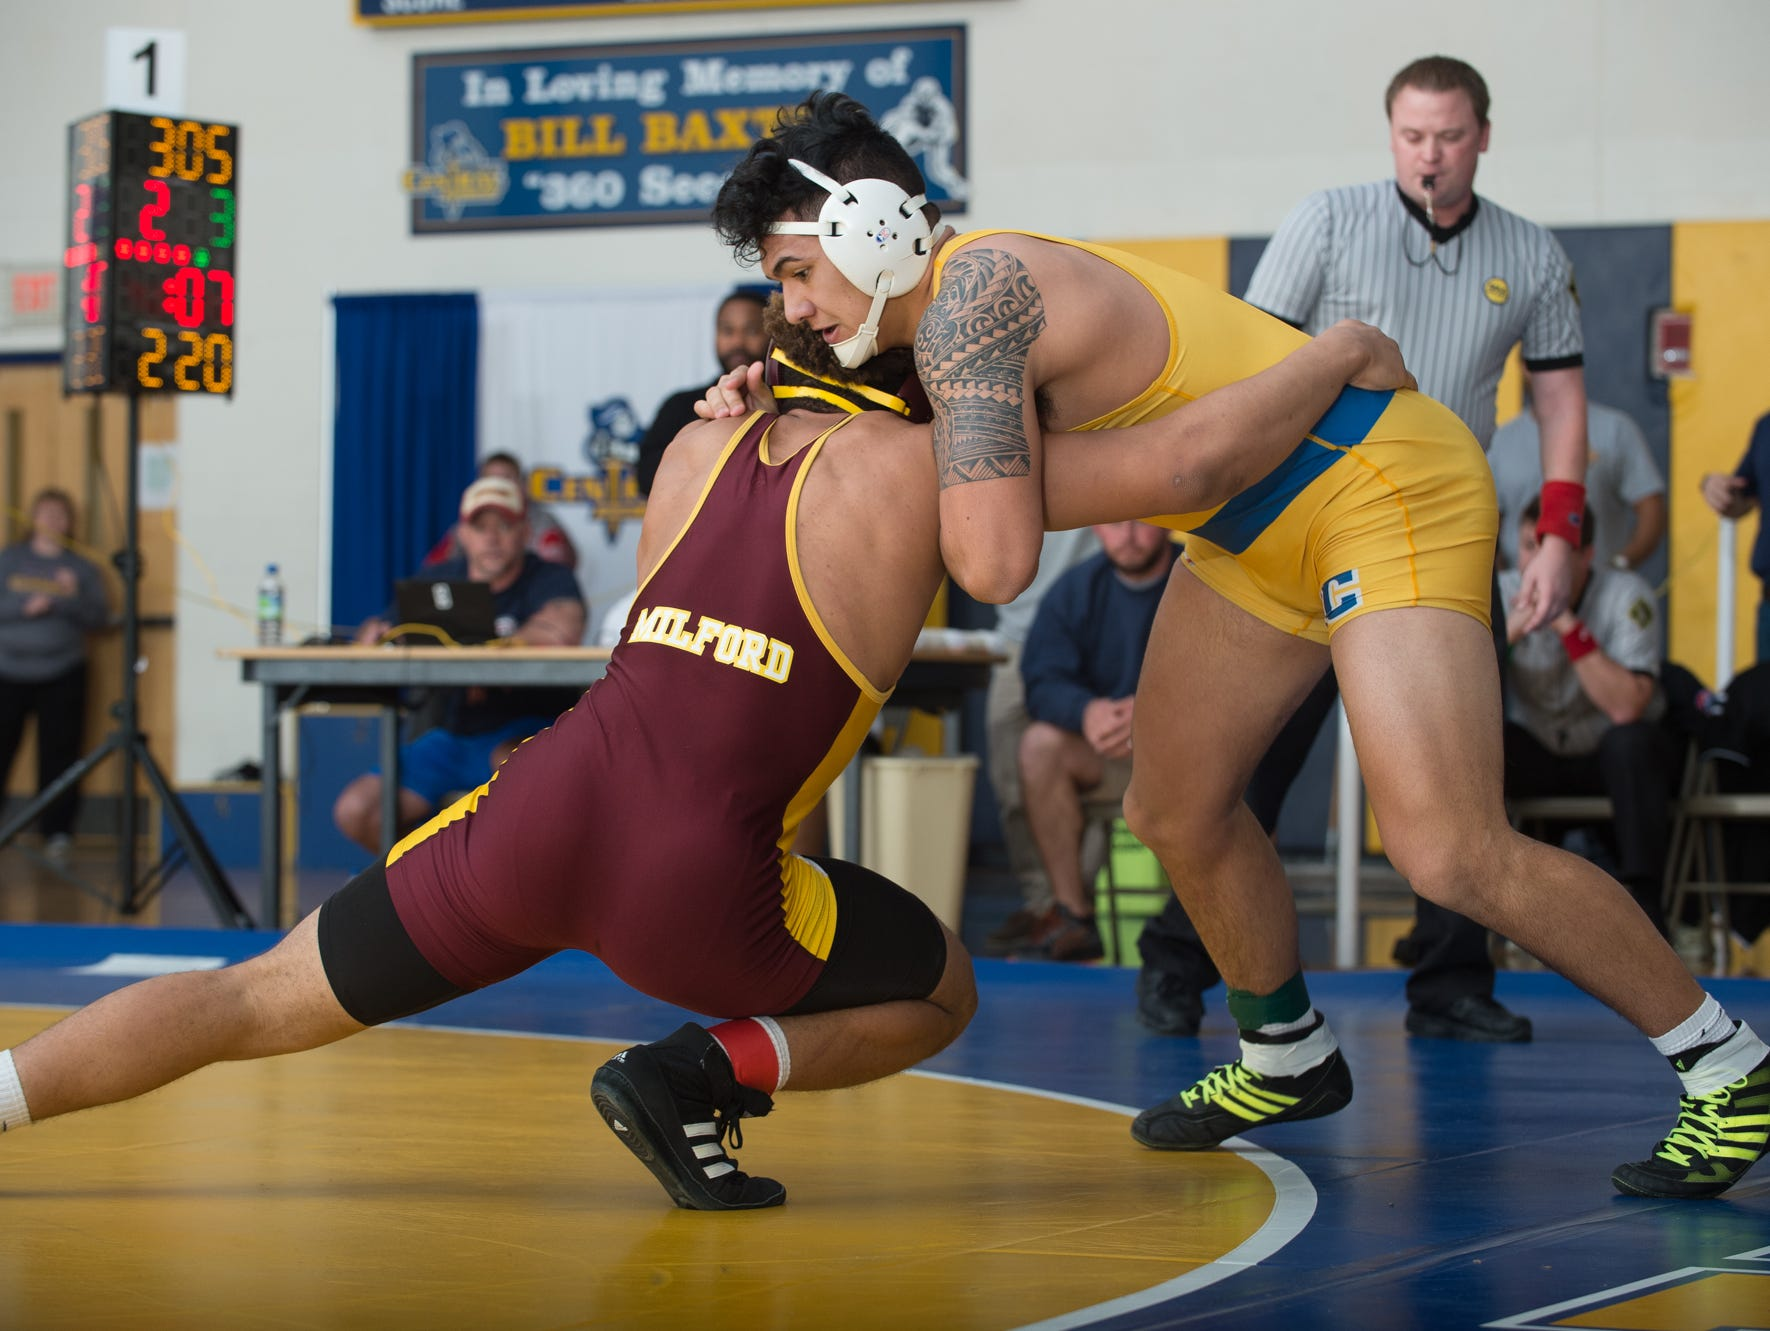 Sussex Central's Johnny Morris, right, pushes back on Milford's Dominic Covington to stay in bounce in the 220 pound championship match at the Henlopen Conference wrestling tournament at Sussex Central High School.